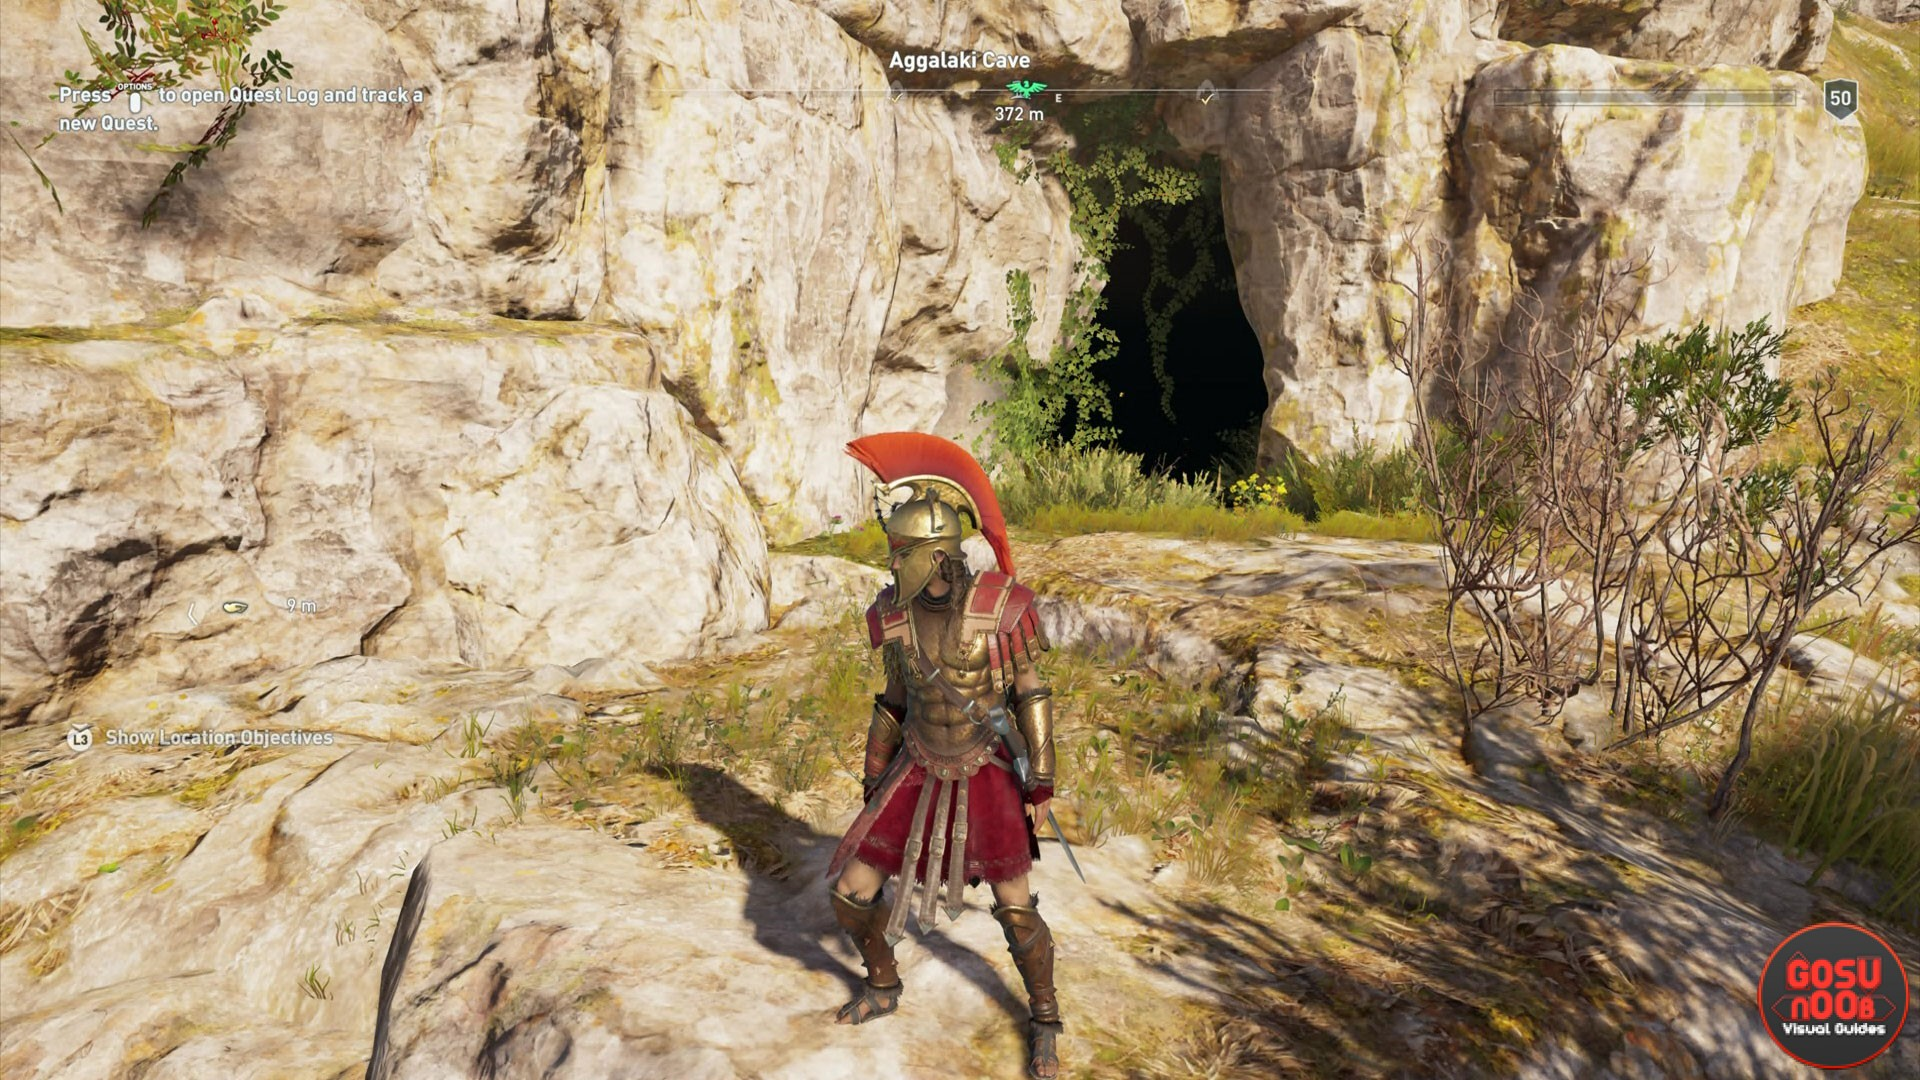 Assassin S Creed Odyssey City Of Gold Quest Where To Find Chest Location